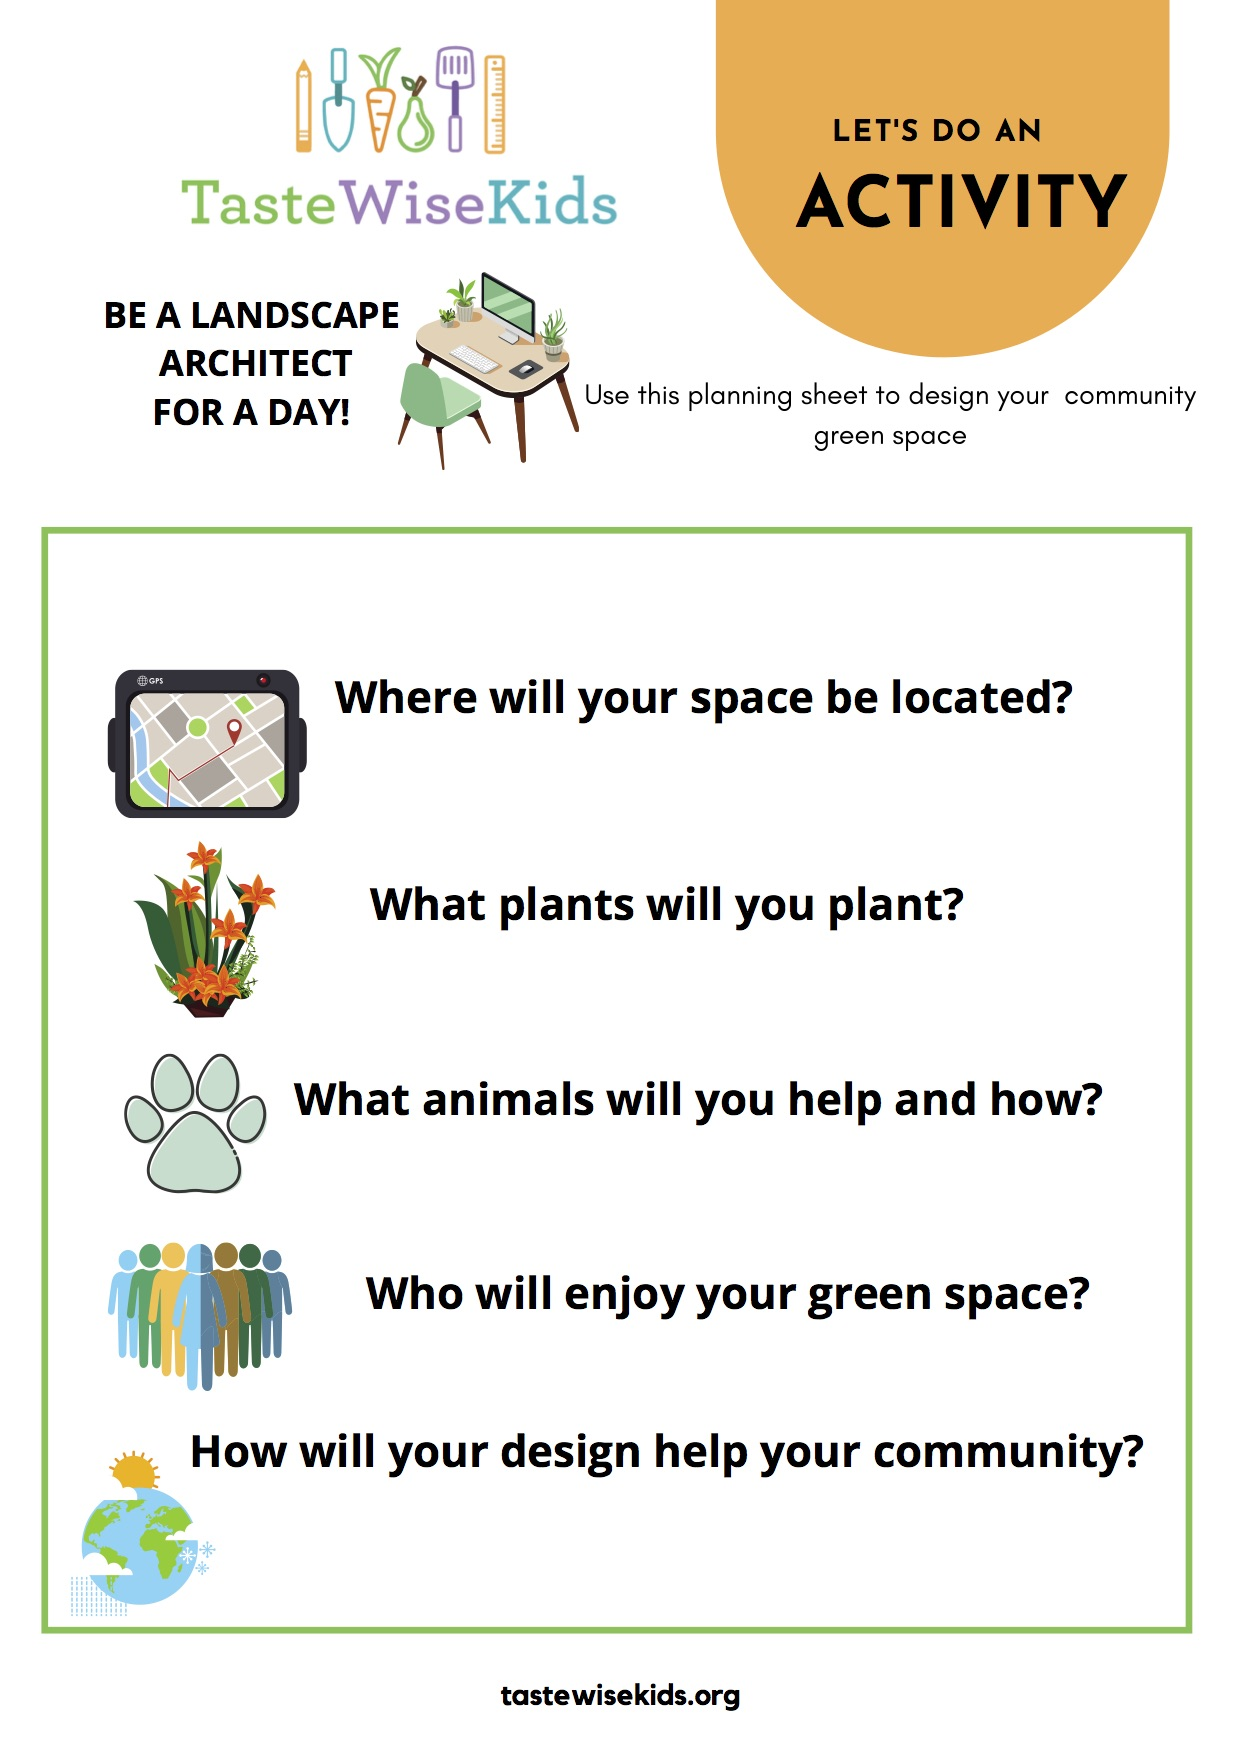 Design a Community Green Space